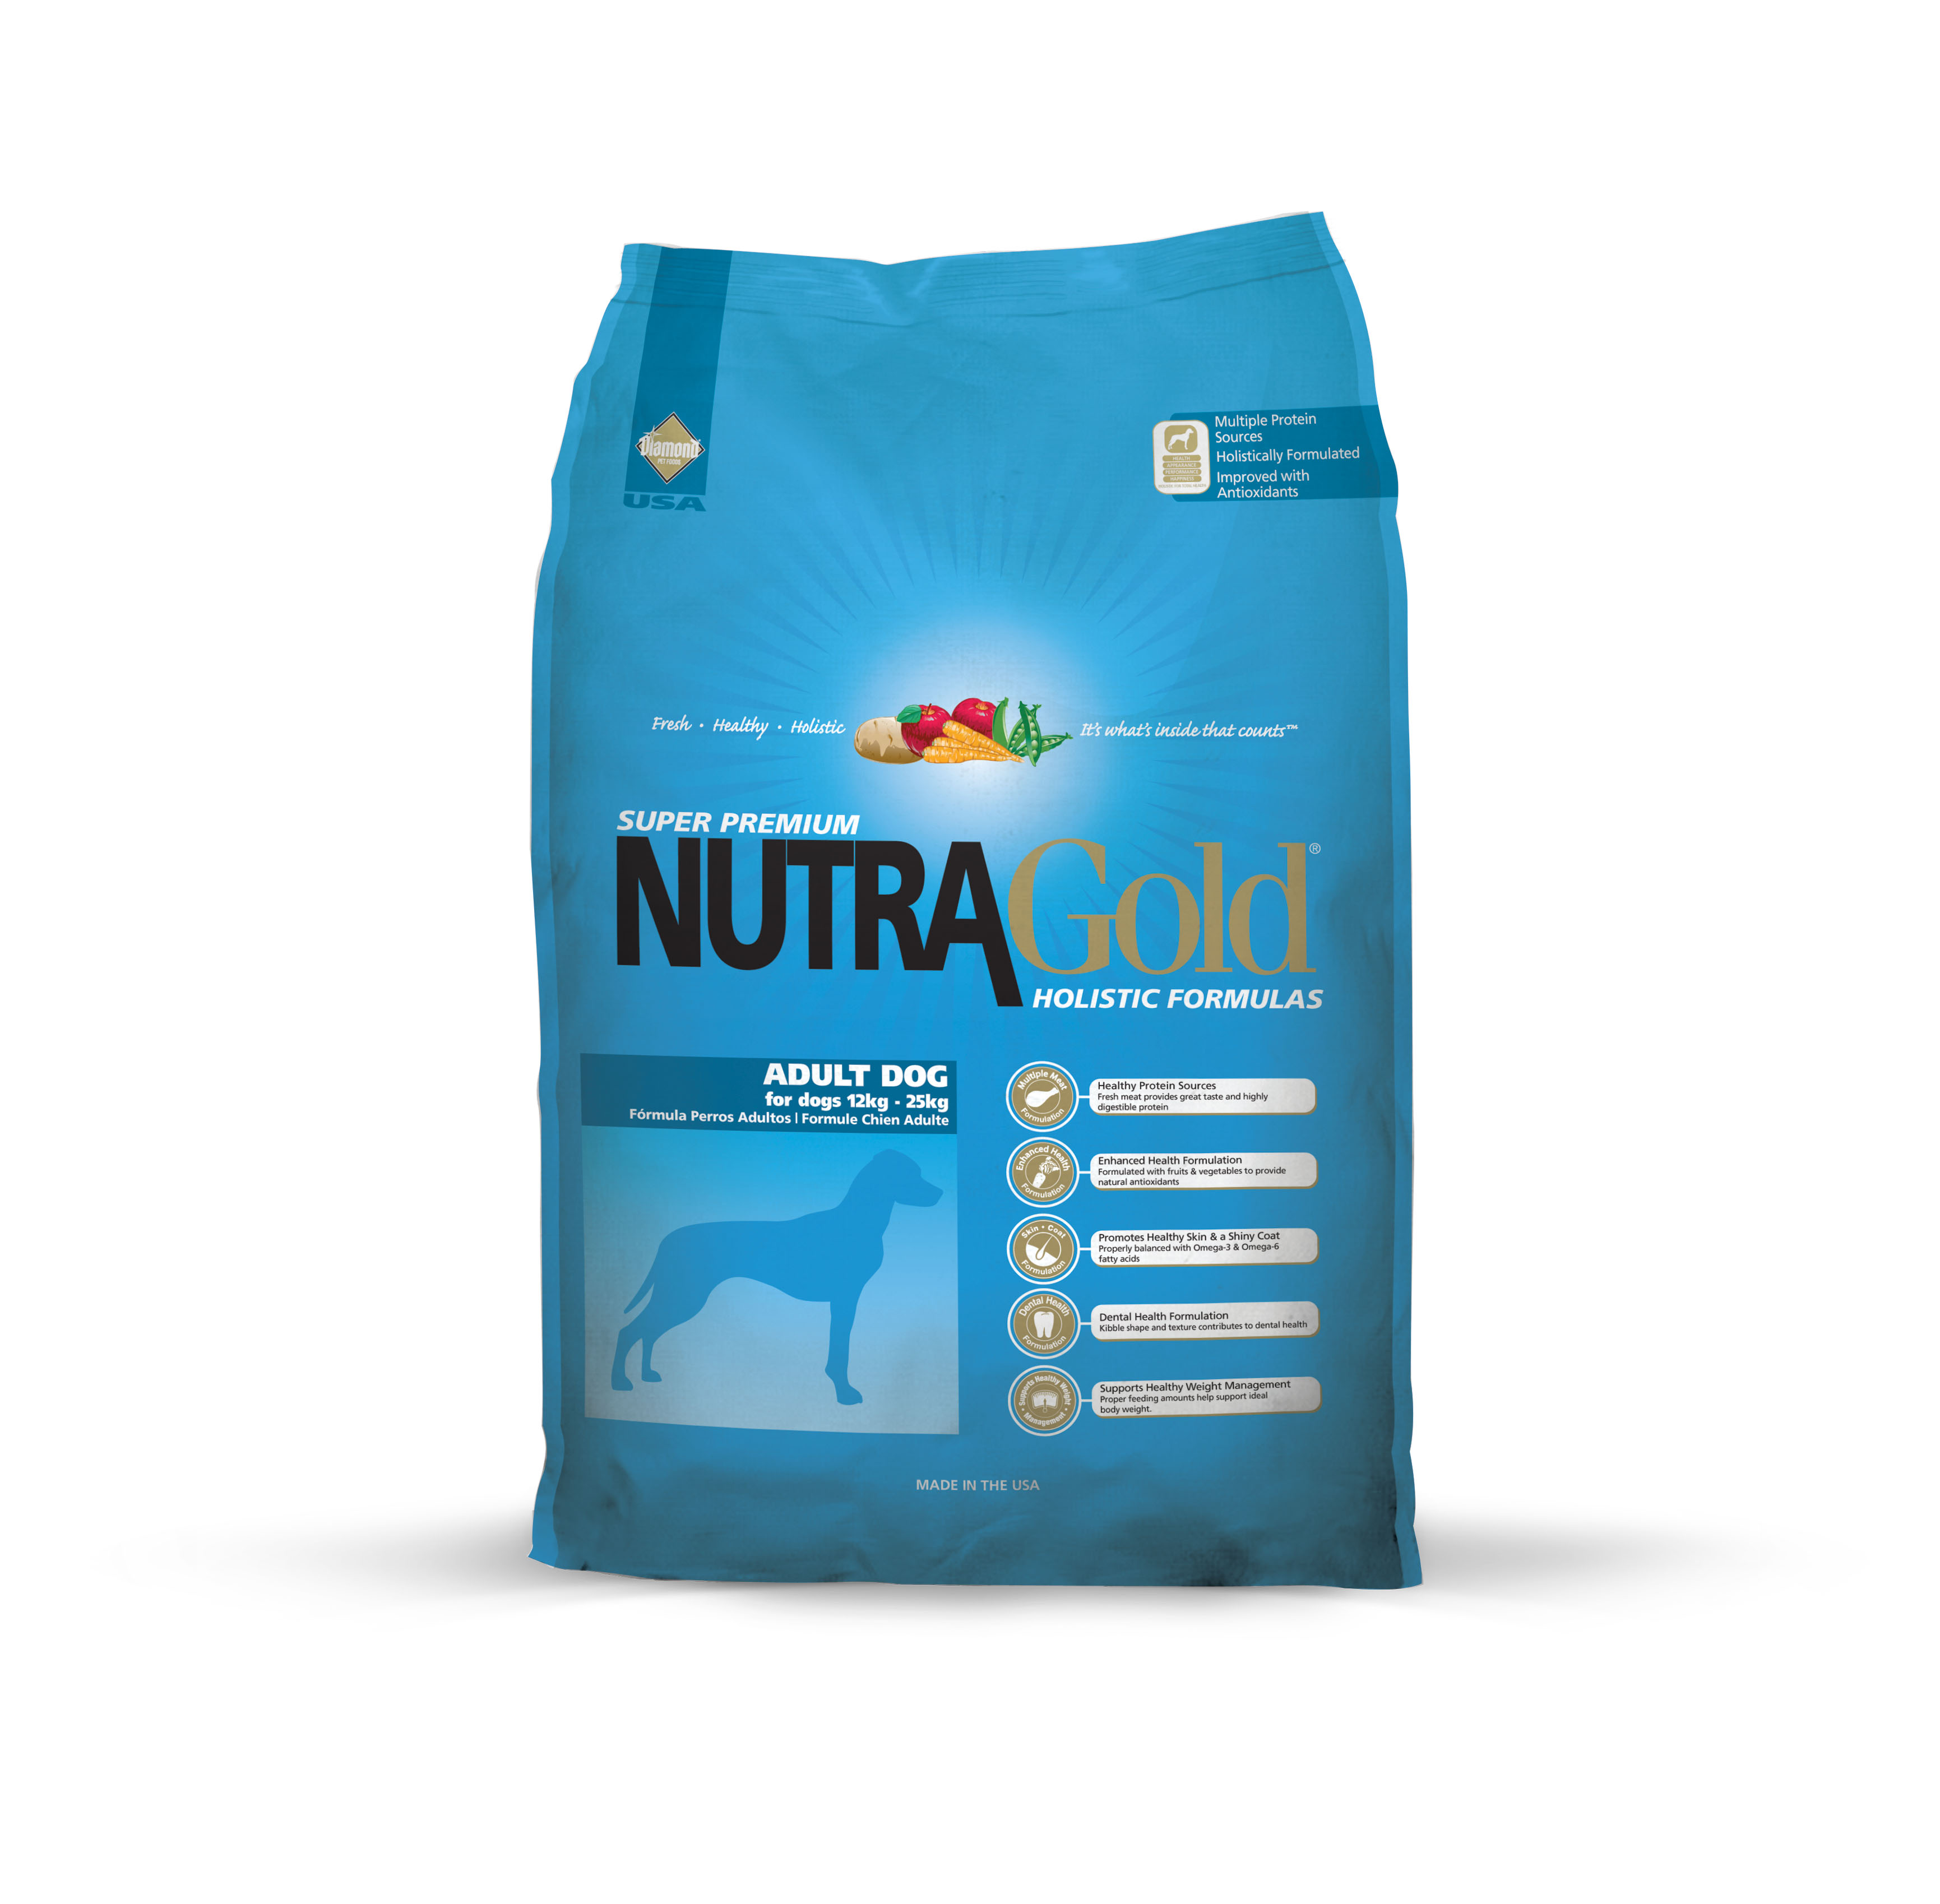 Nutra Gold Holistic Adult Dog Food